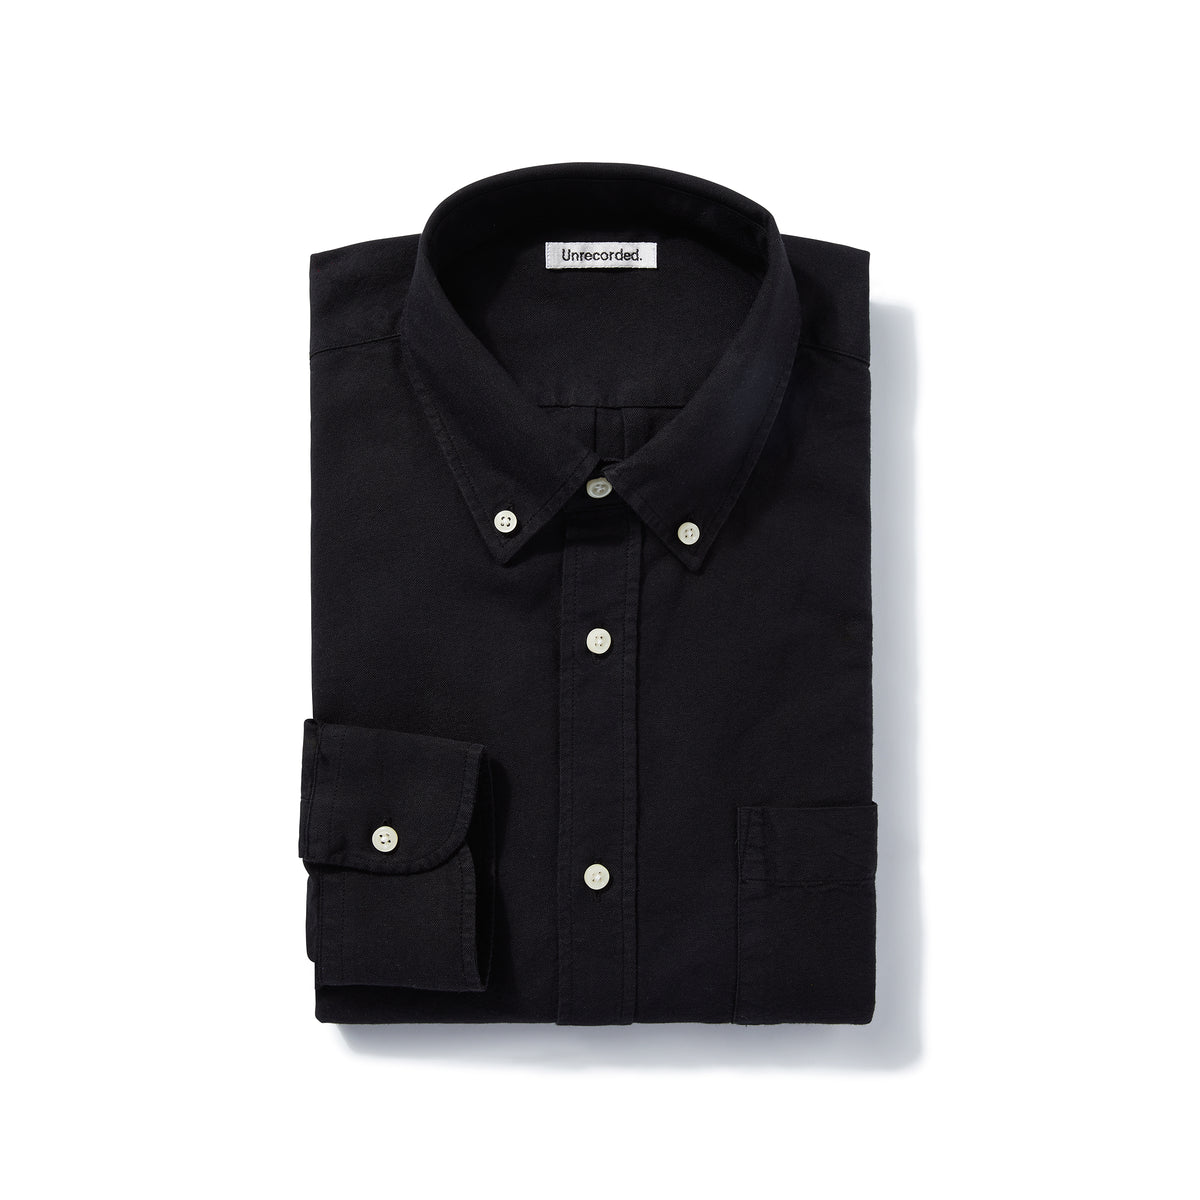 Oxford Shirt in Black made from Organic Cotton